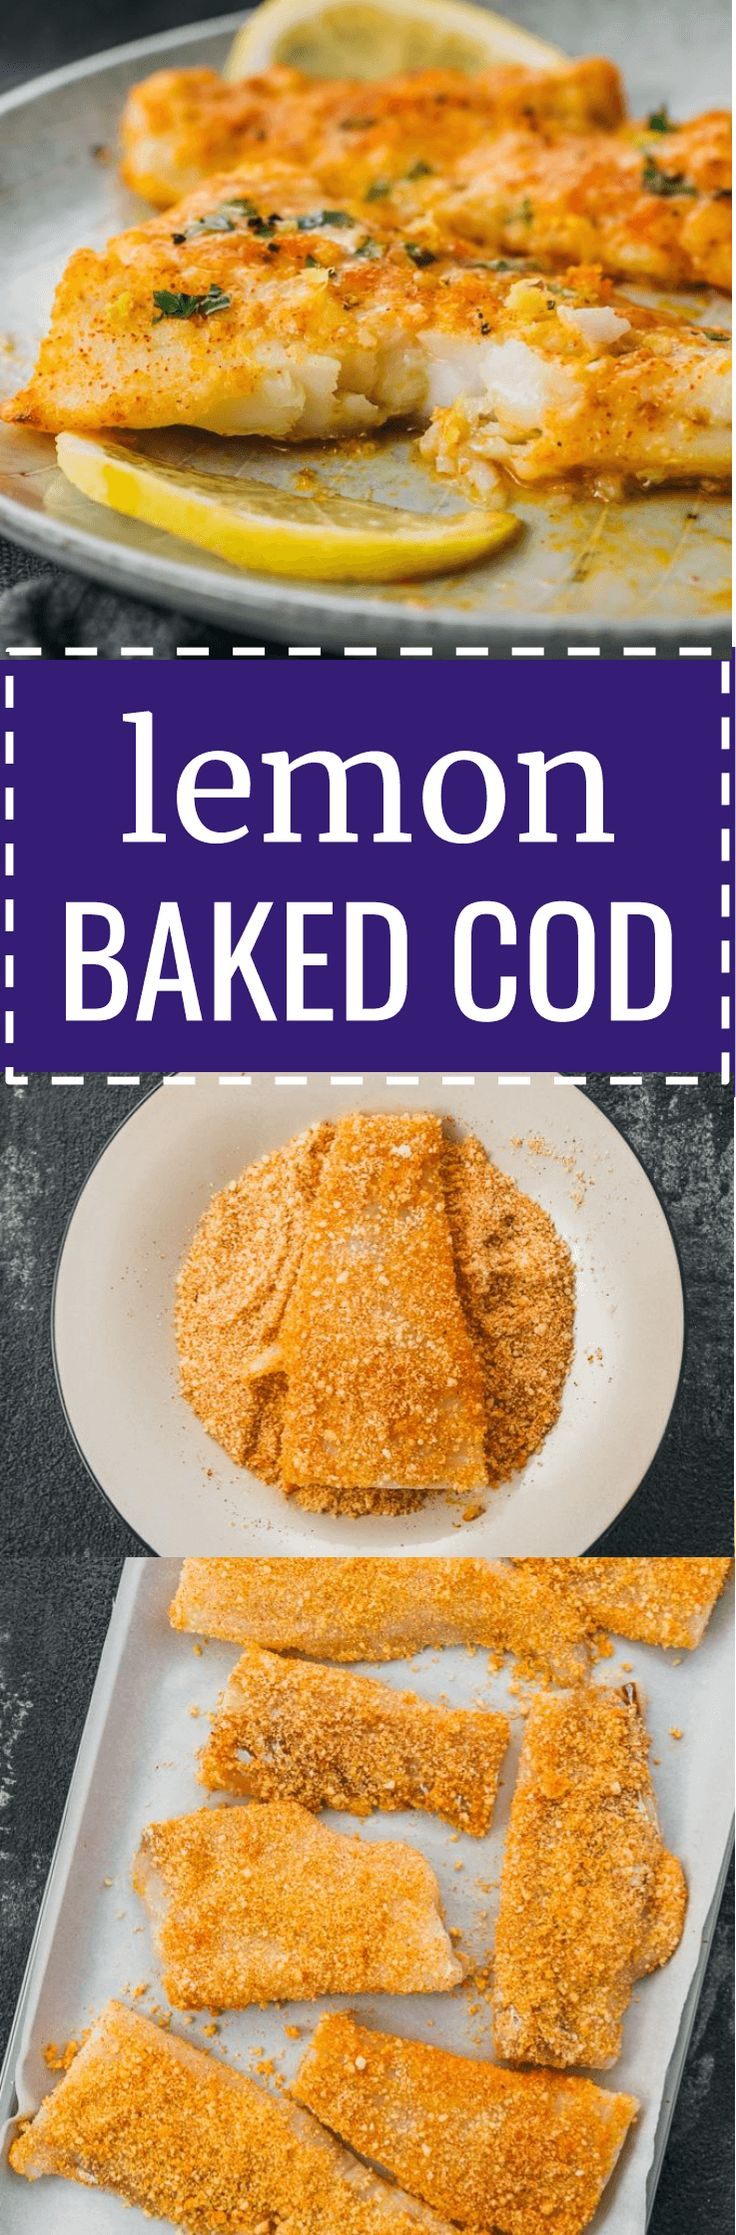 A delicous baked cod with lemon juice and parmesan cheese that's very low in carbs and keto friendly. low carb / diet / atkins / induction / meals / recipes / easy / dinner / lunch / foods / healthy / gluten free / WW2 / fish / lemon butter / how to cook / breaded / easy / seasoning / crusted / fillet / buttered / sauce / oven / foil / roasted / for beginners #fish #seafood #keto #lowcarb